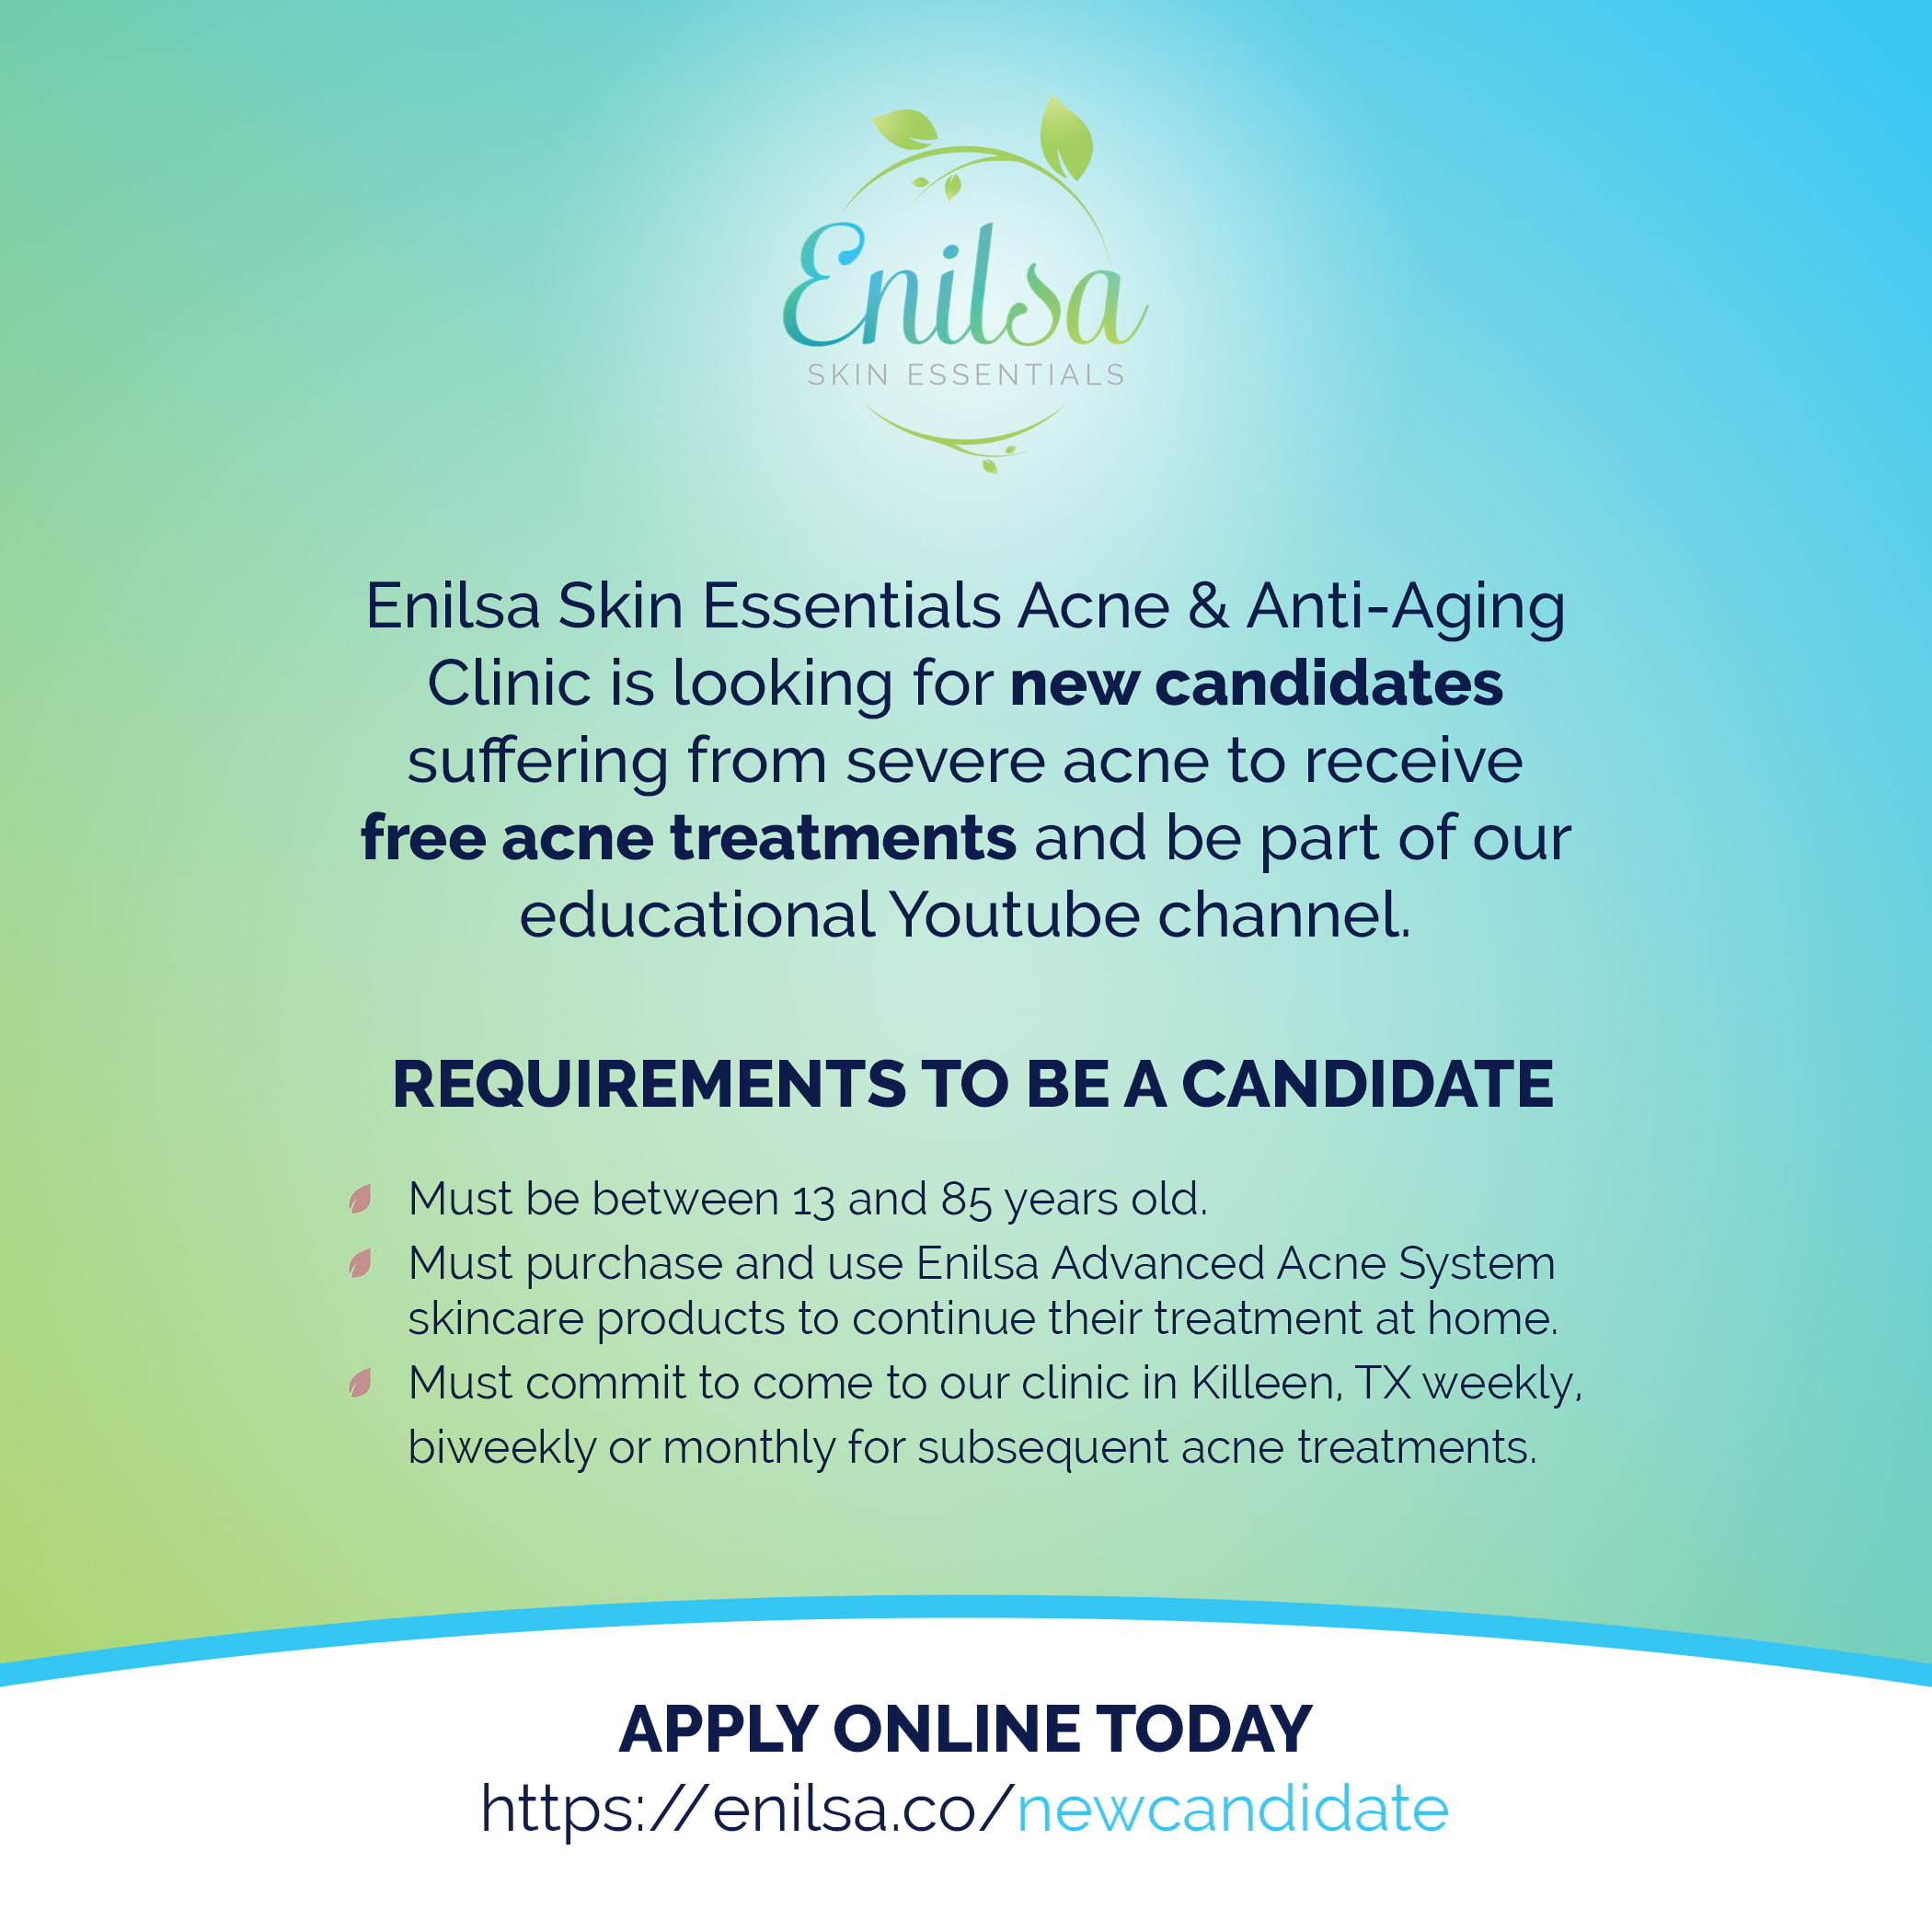 Enilsa Skin Essentials is looking for severe acne candaidates